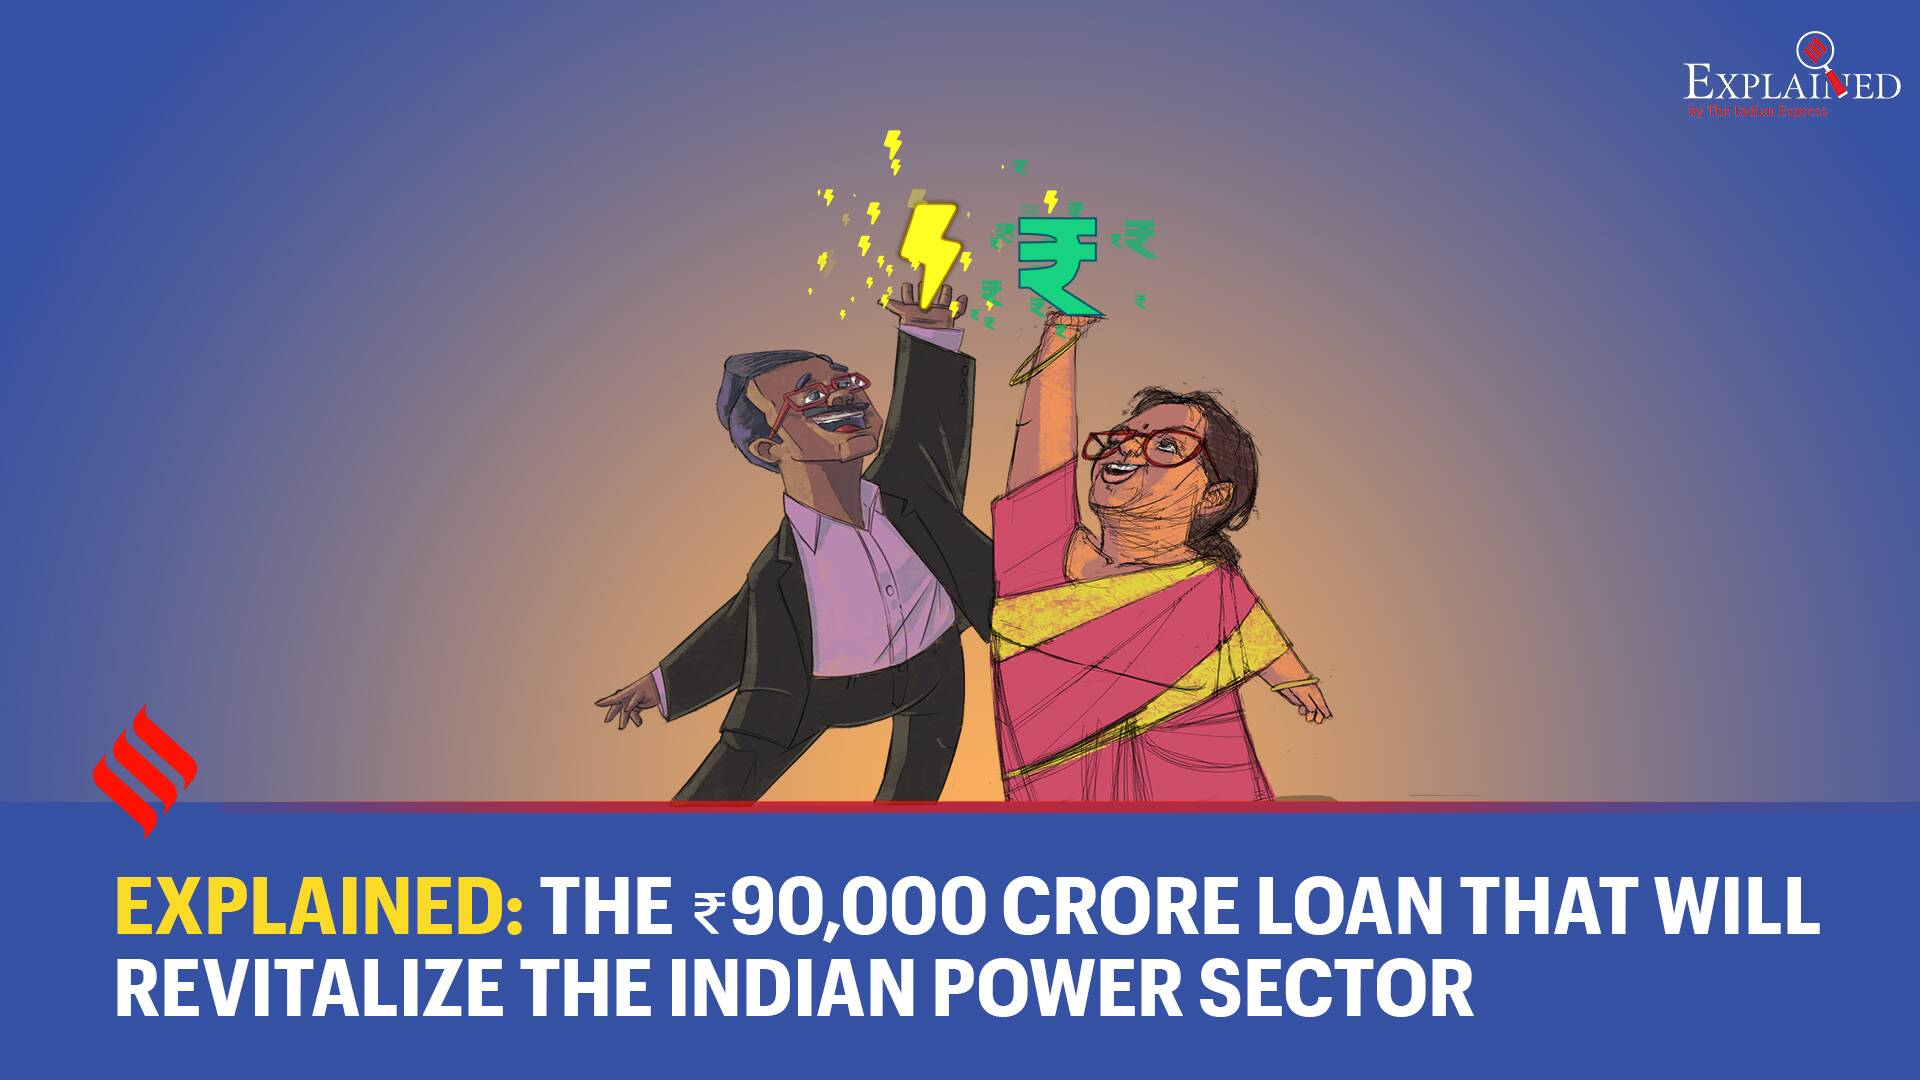 Explained: The ₹90,000 Crore Loan That Will Revitalize The Indian Power Sector